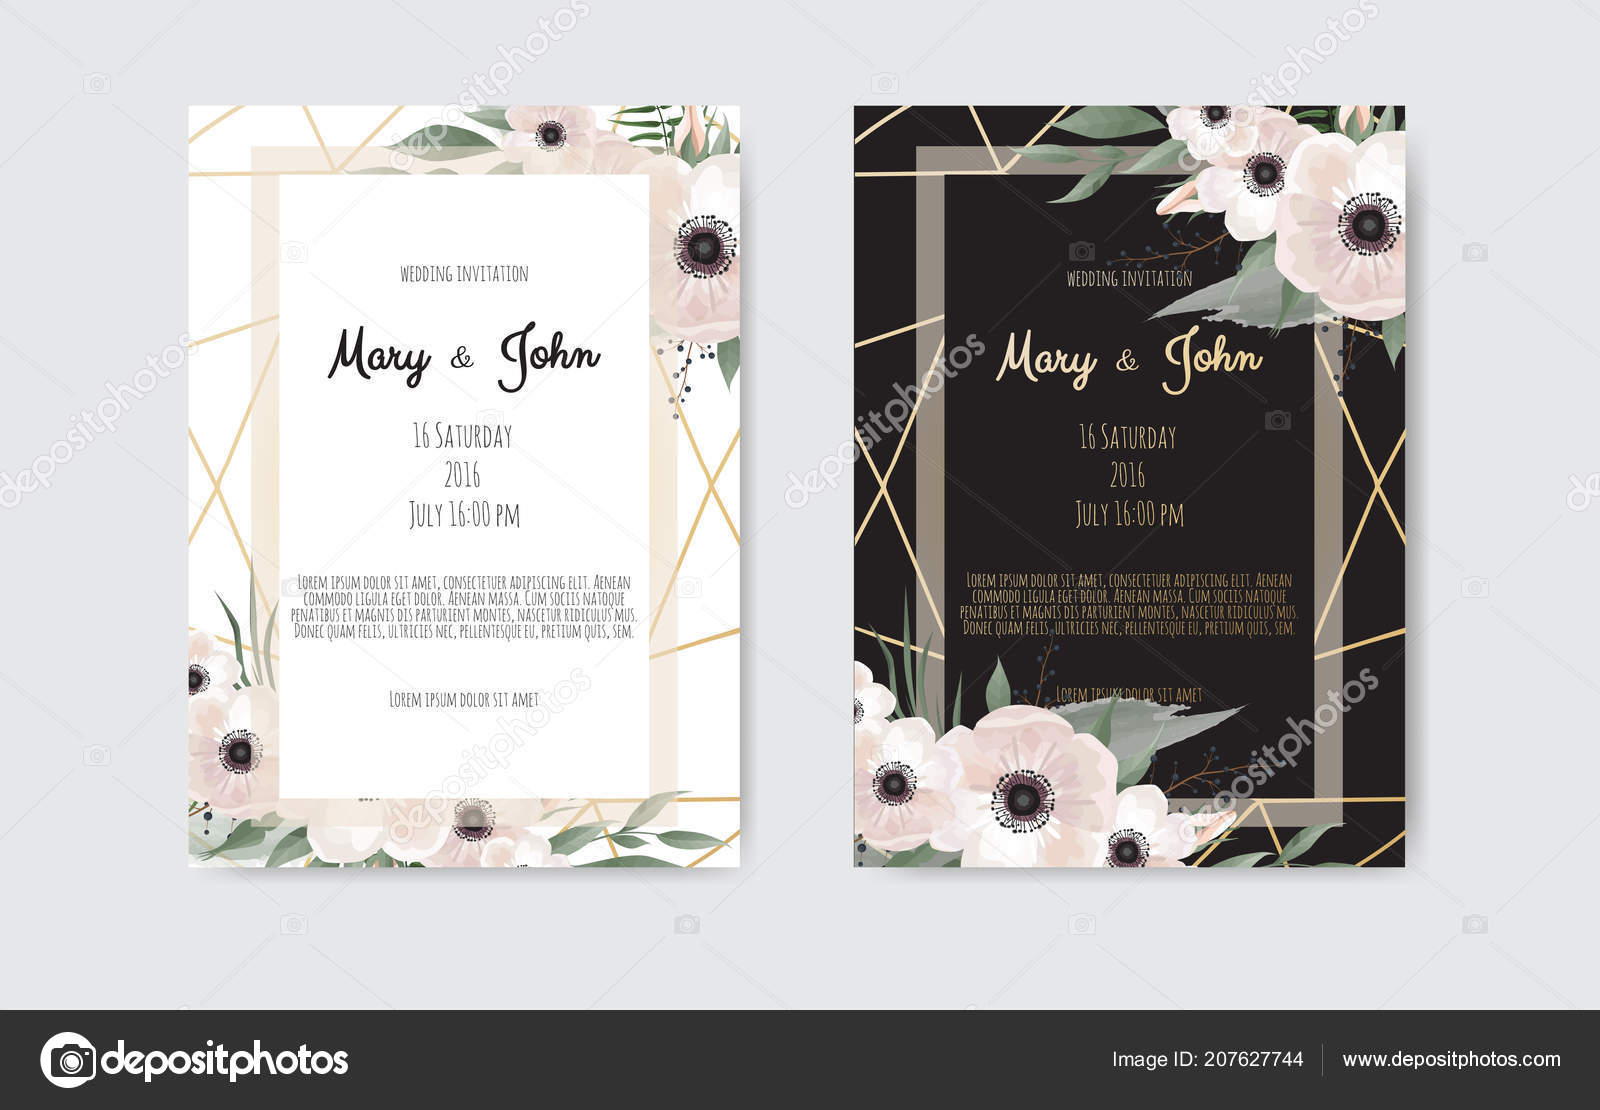 Botanical Wedding Invitation Card Template Design White Pink Flowers ...